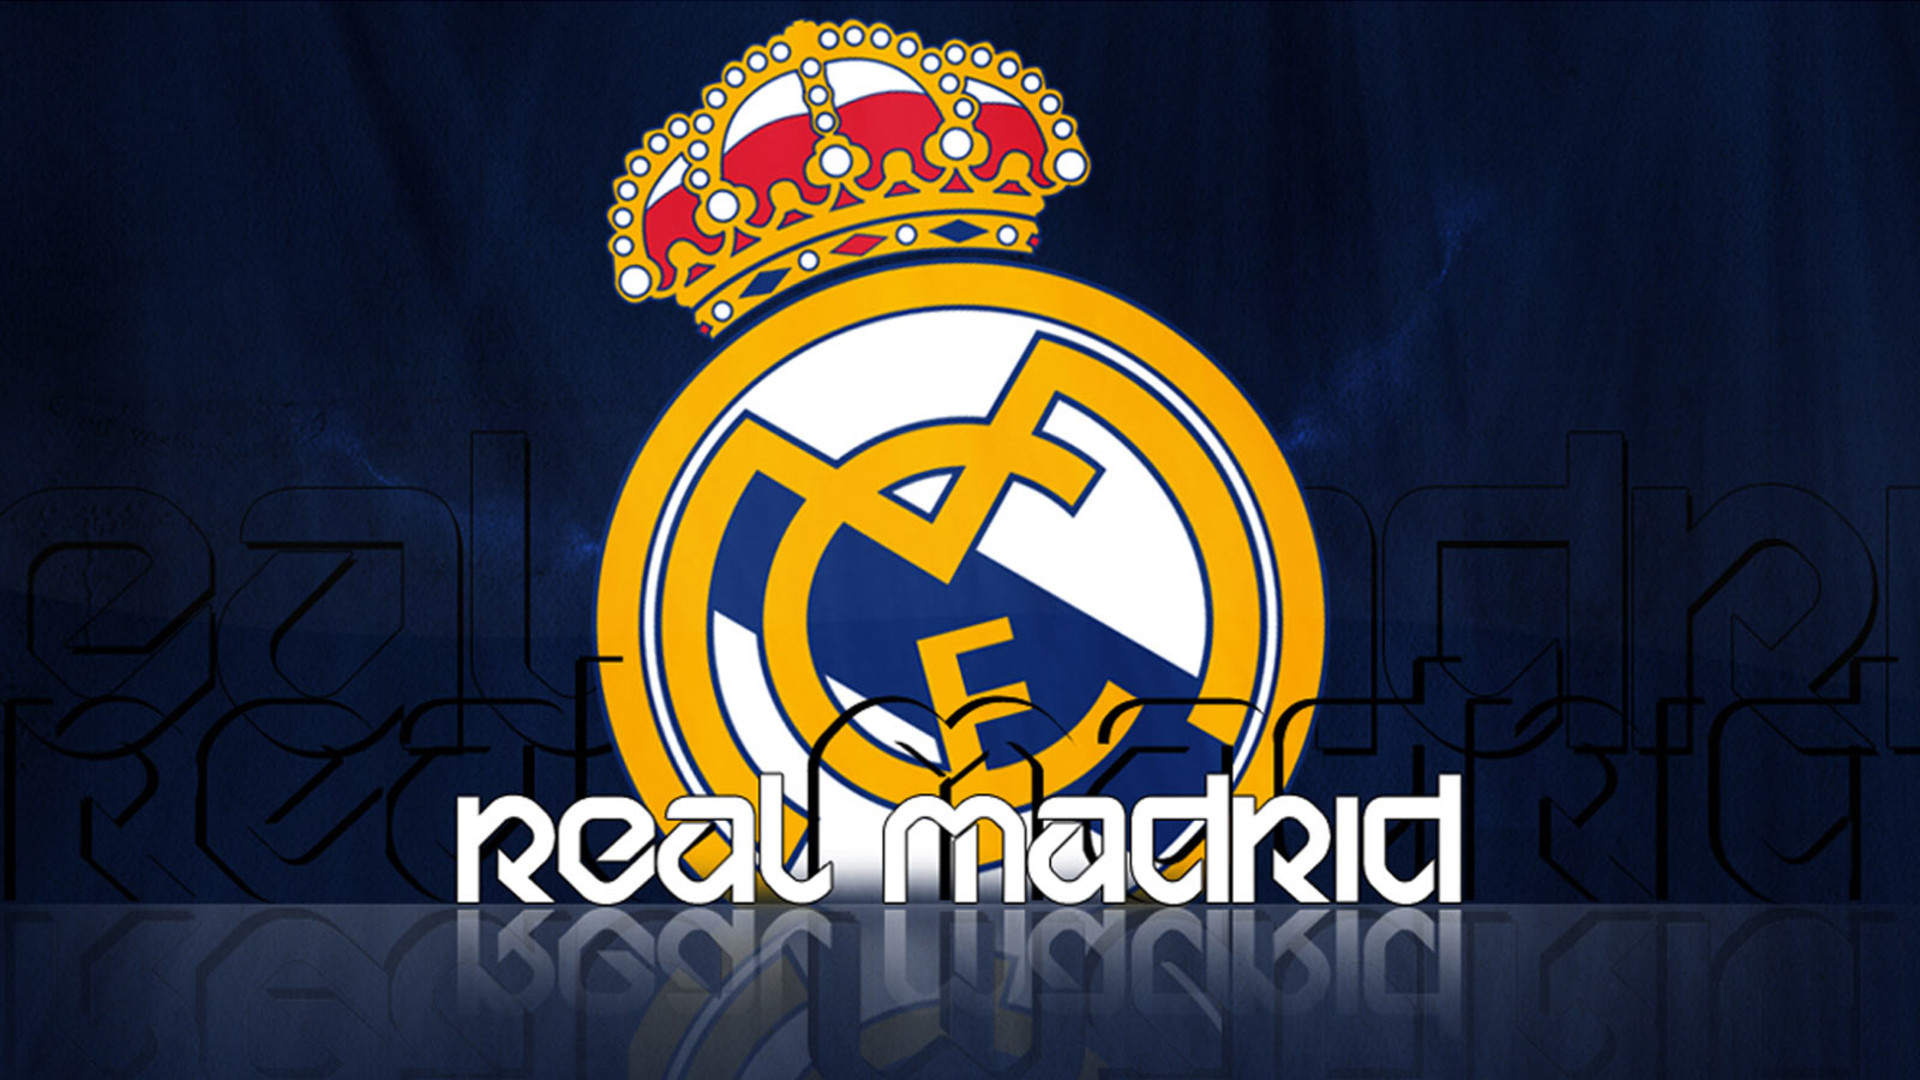 1920x1080 real-madrid-logo-fullhd